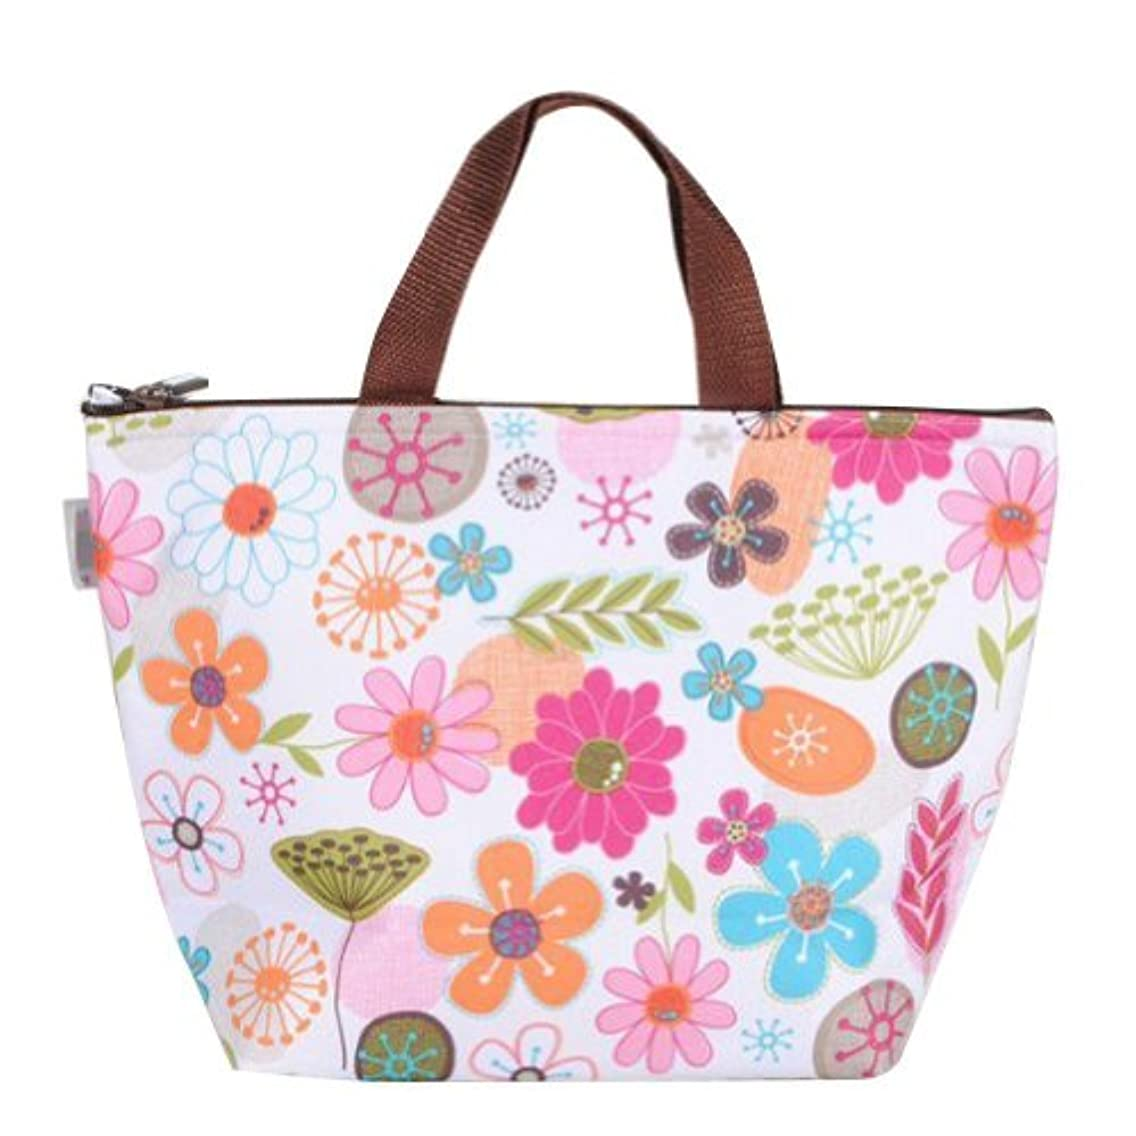 GCIYAEN Women's Insulated Lunch Tote Bag ~ 12.5